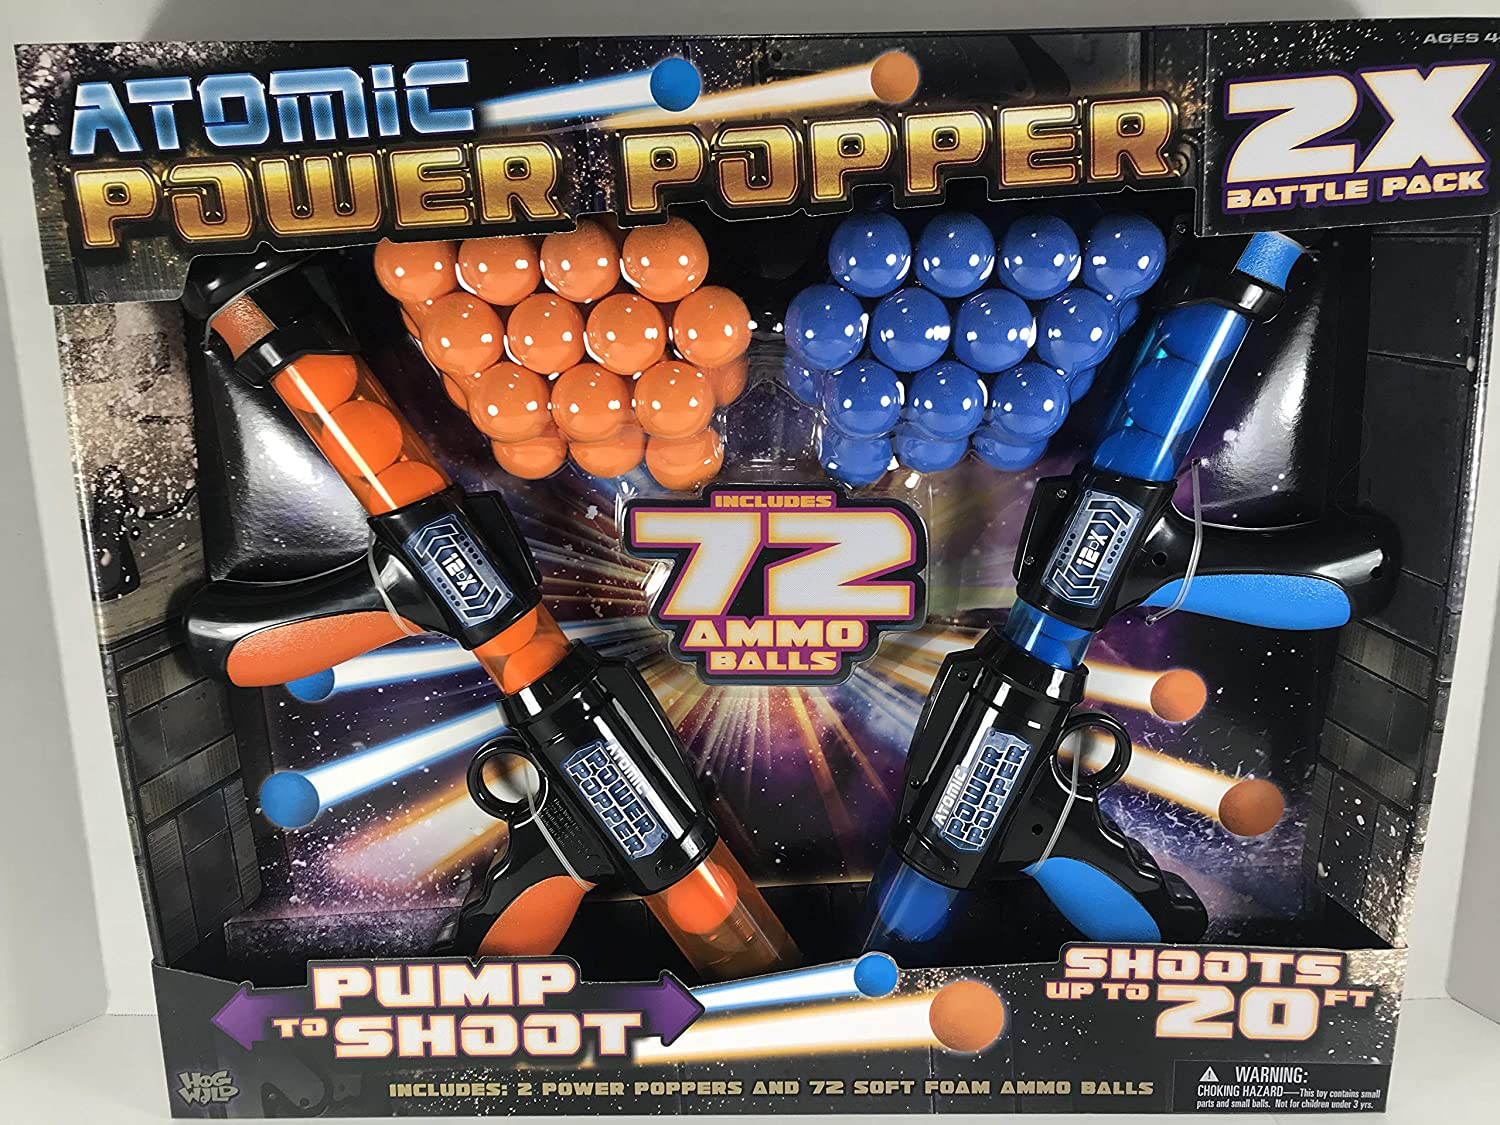 Hog Wild Atomic Power Popper x 2 Battle Pack. 2 Pistolas y 72 Bolas de Espuma Blanda. Alcance hasta 6m